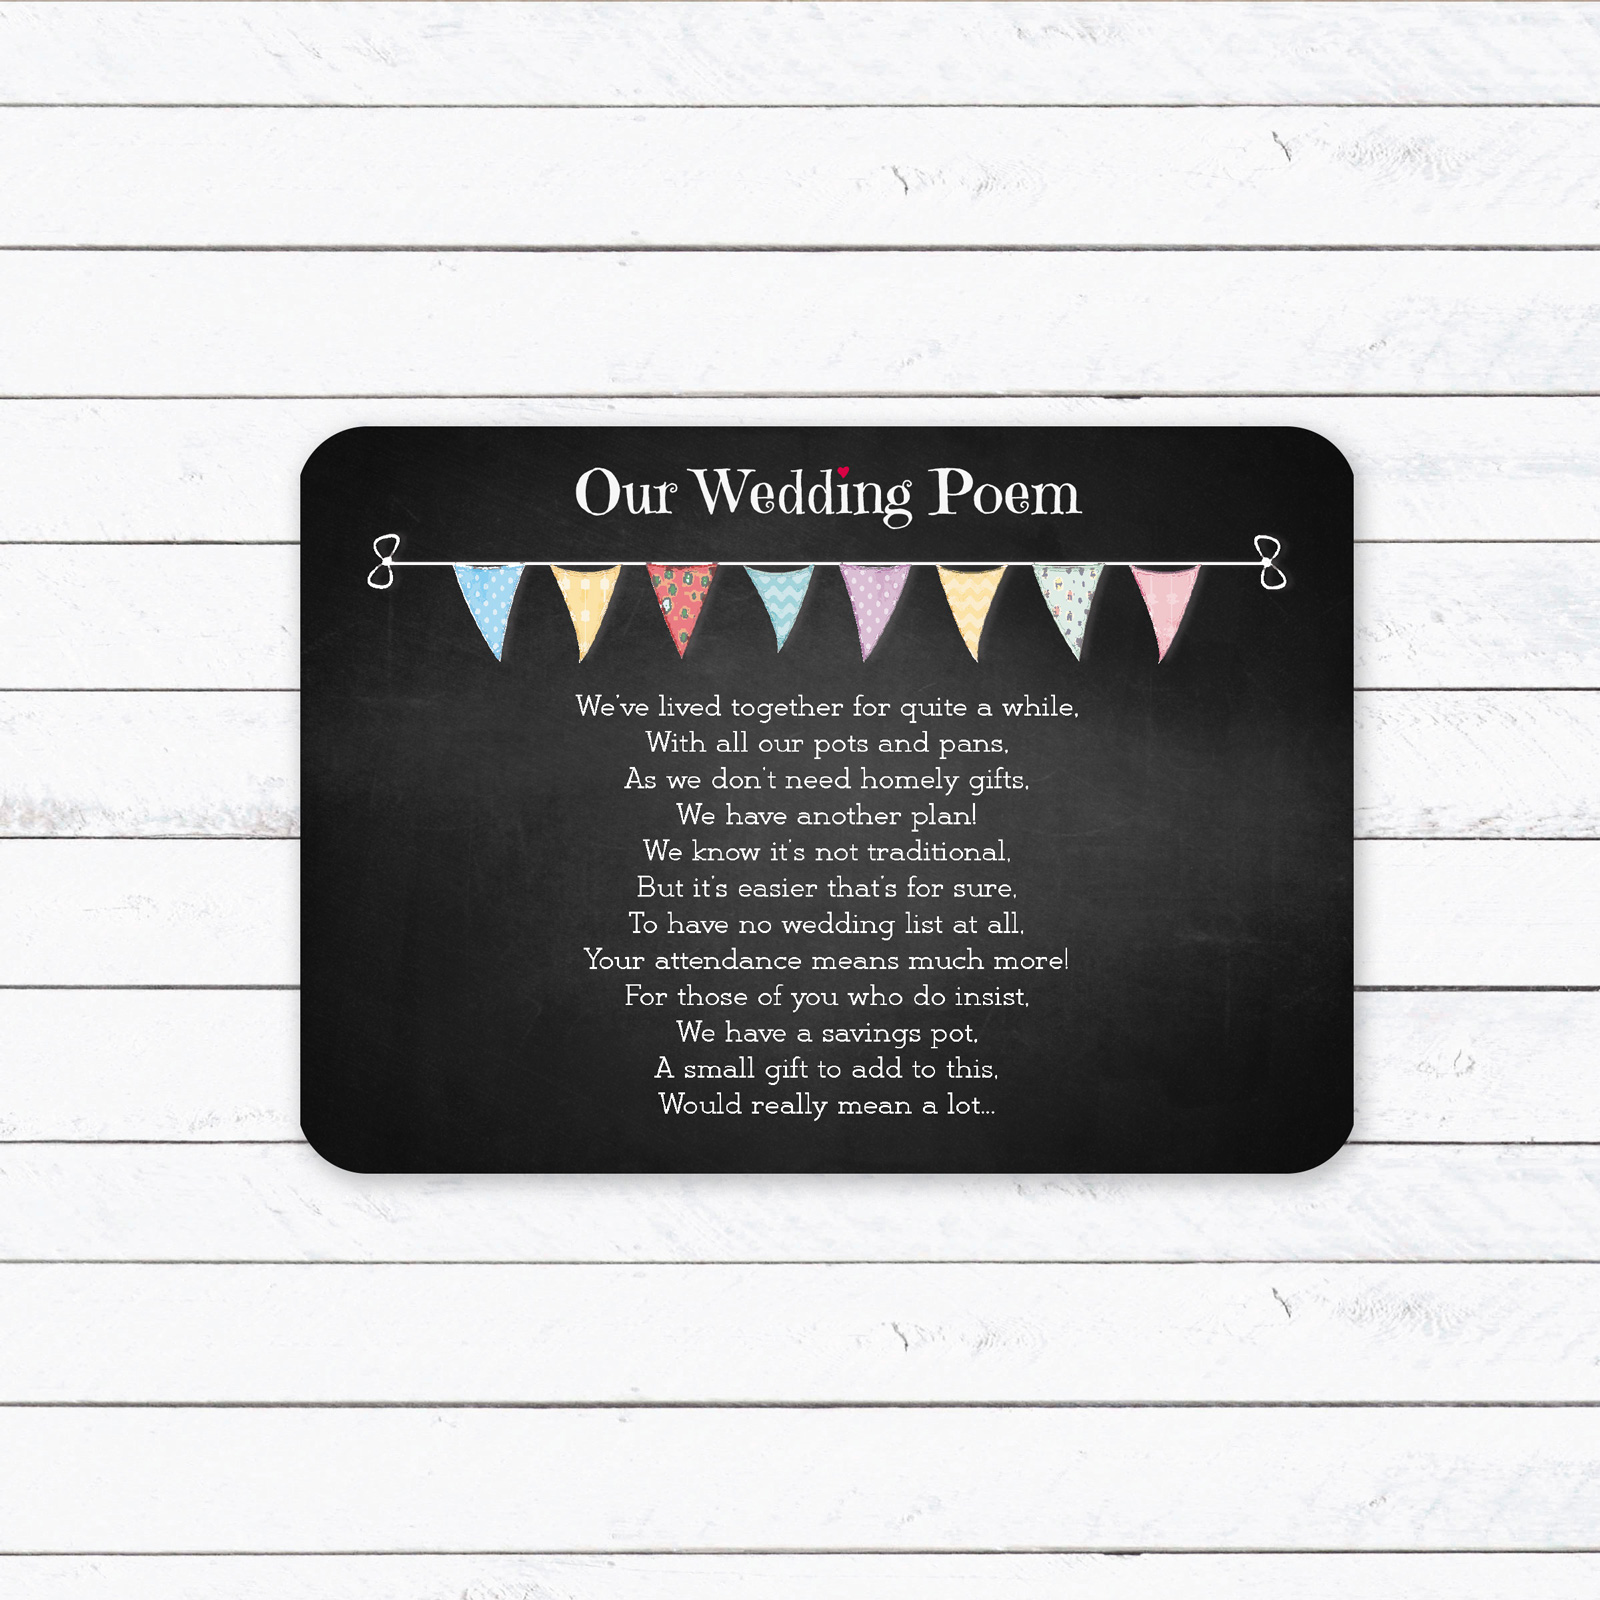 Festival Bunting on Chalkboard - Poem Card